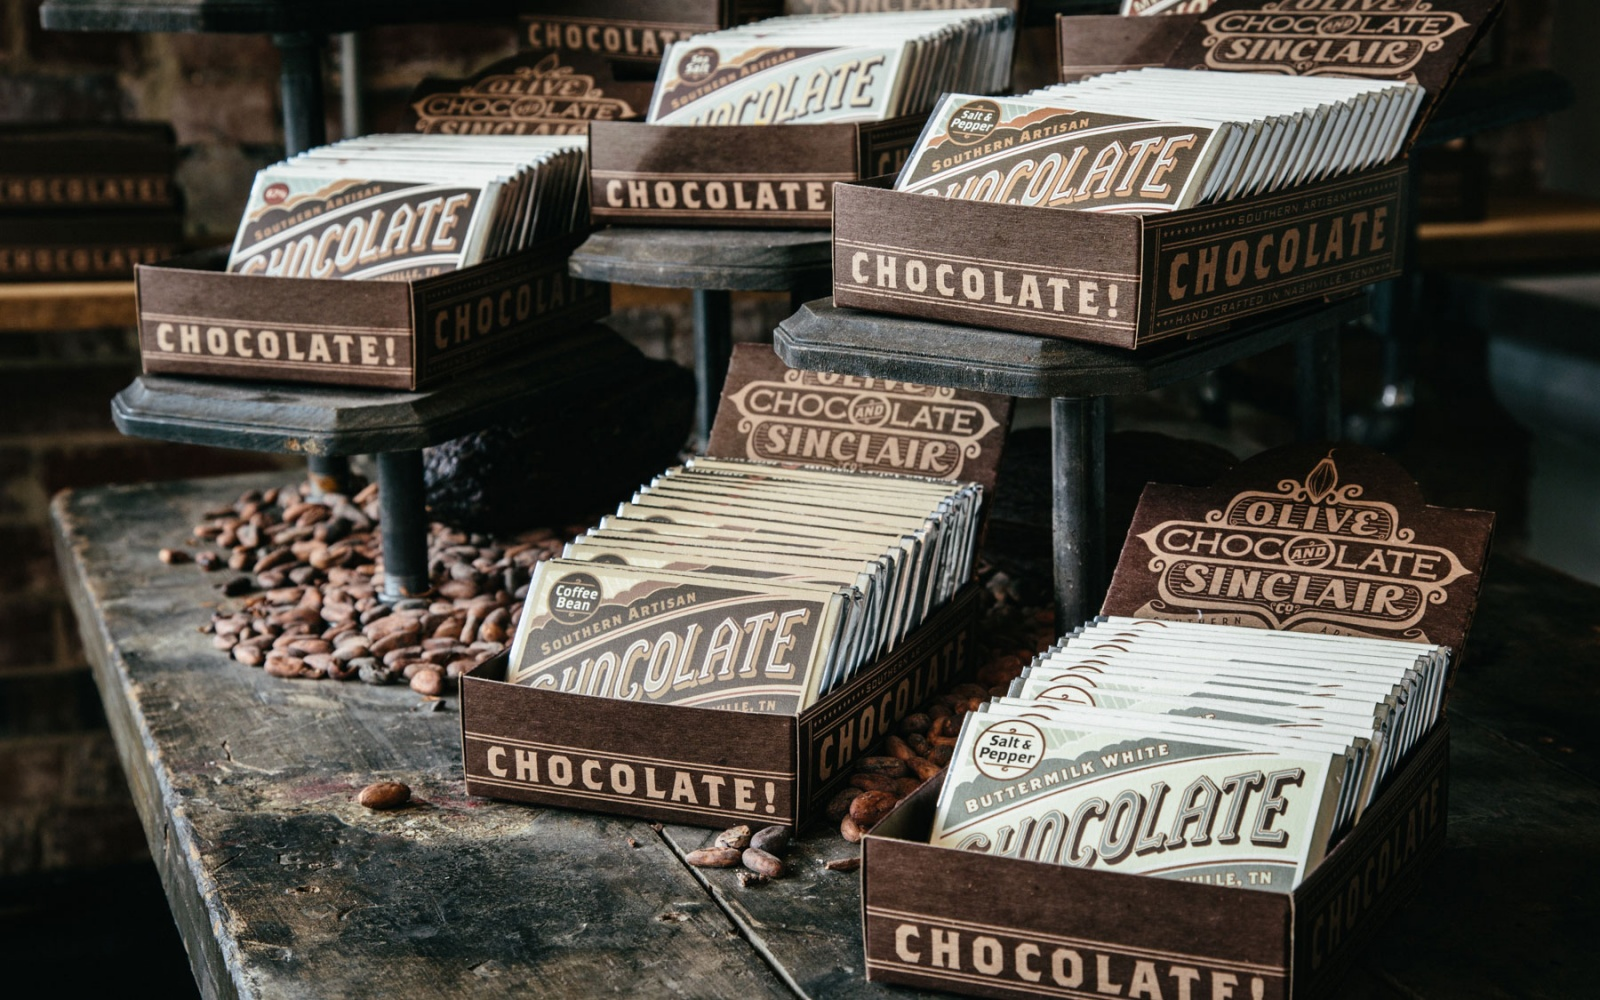 Olive & Sinclair Chocolate Co.